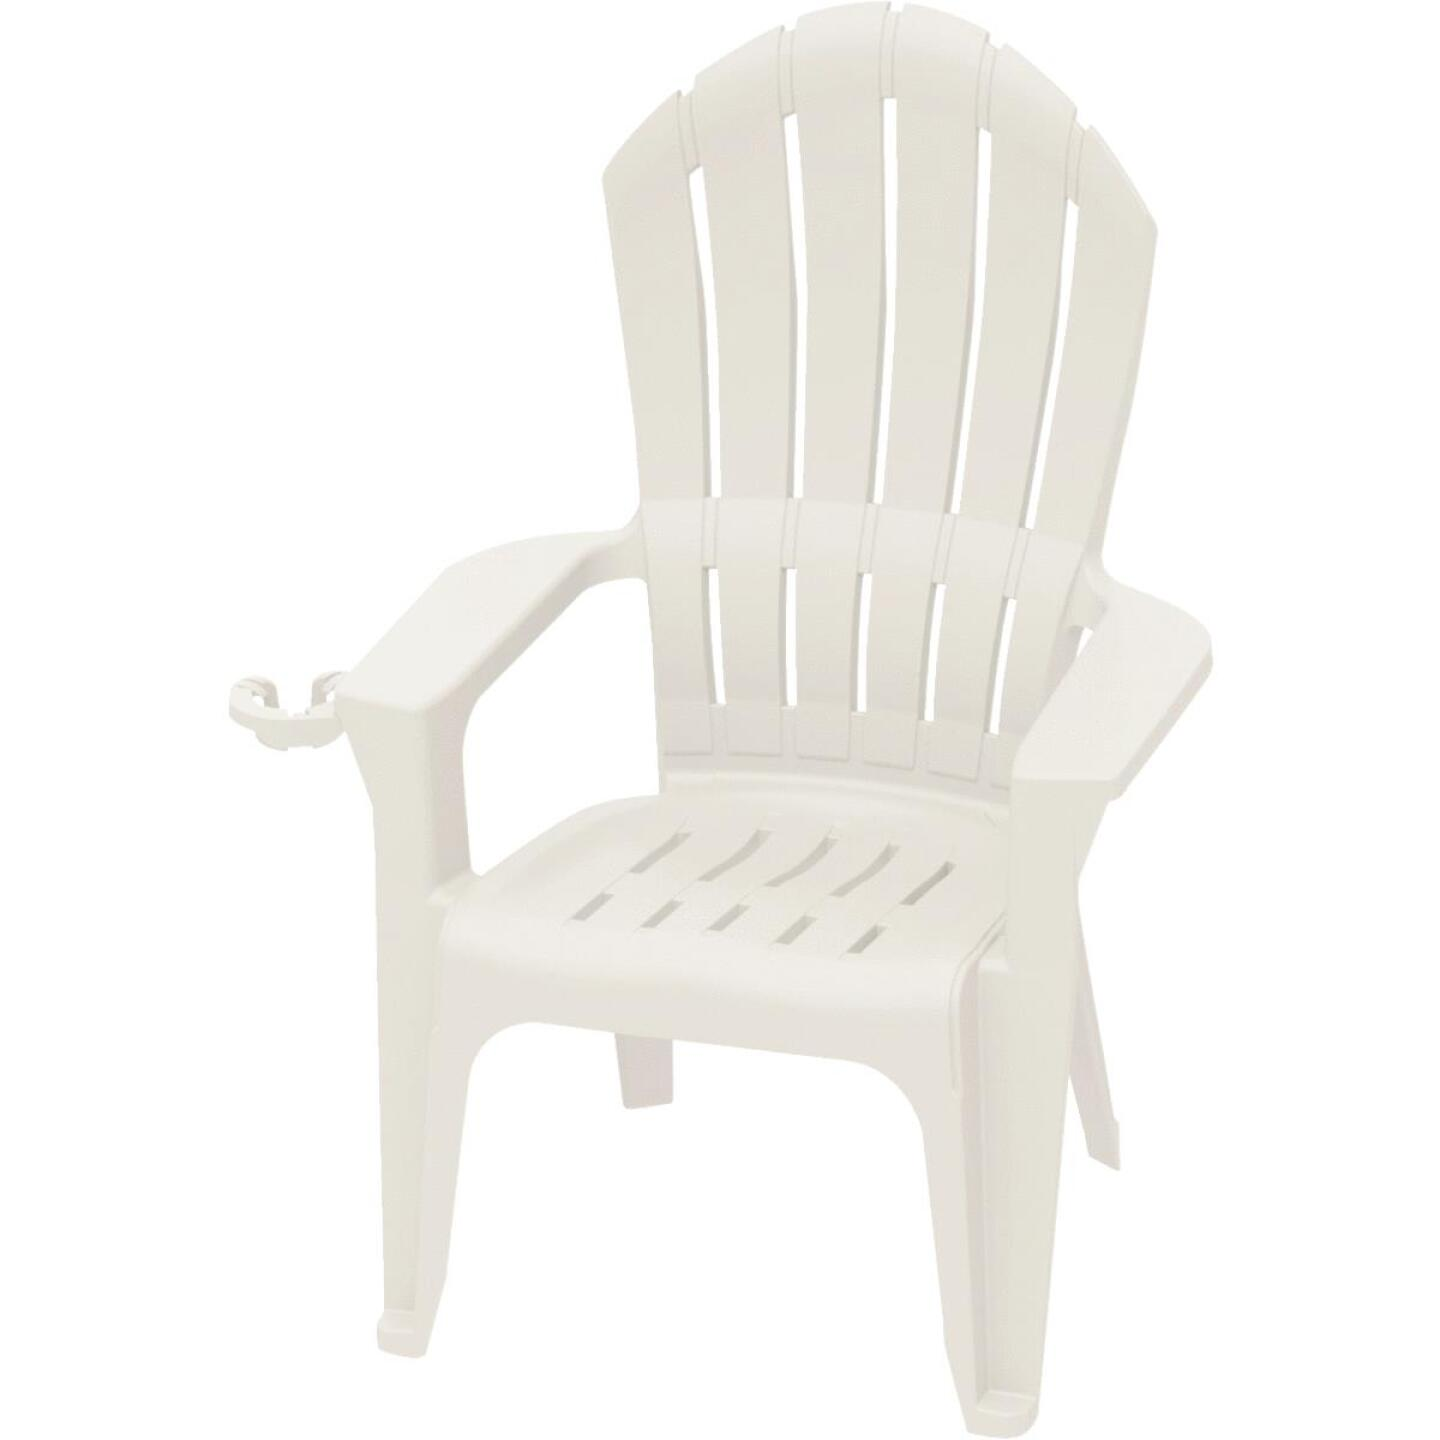 Adams Big Easy White Resin Adirondack Chair Image 1